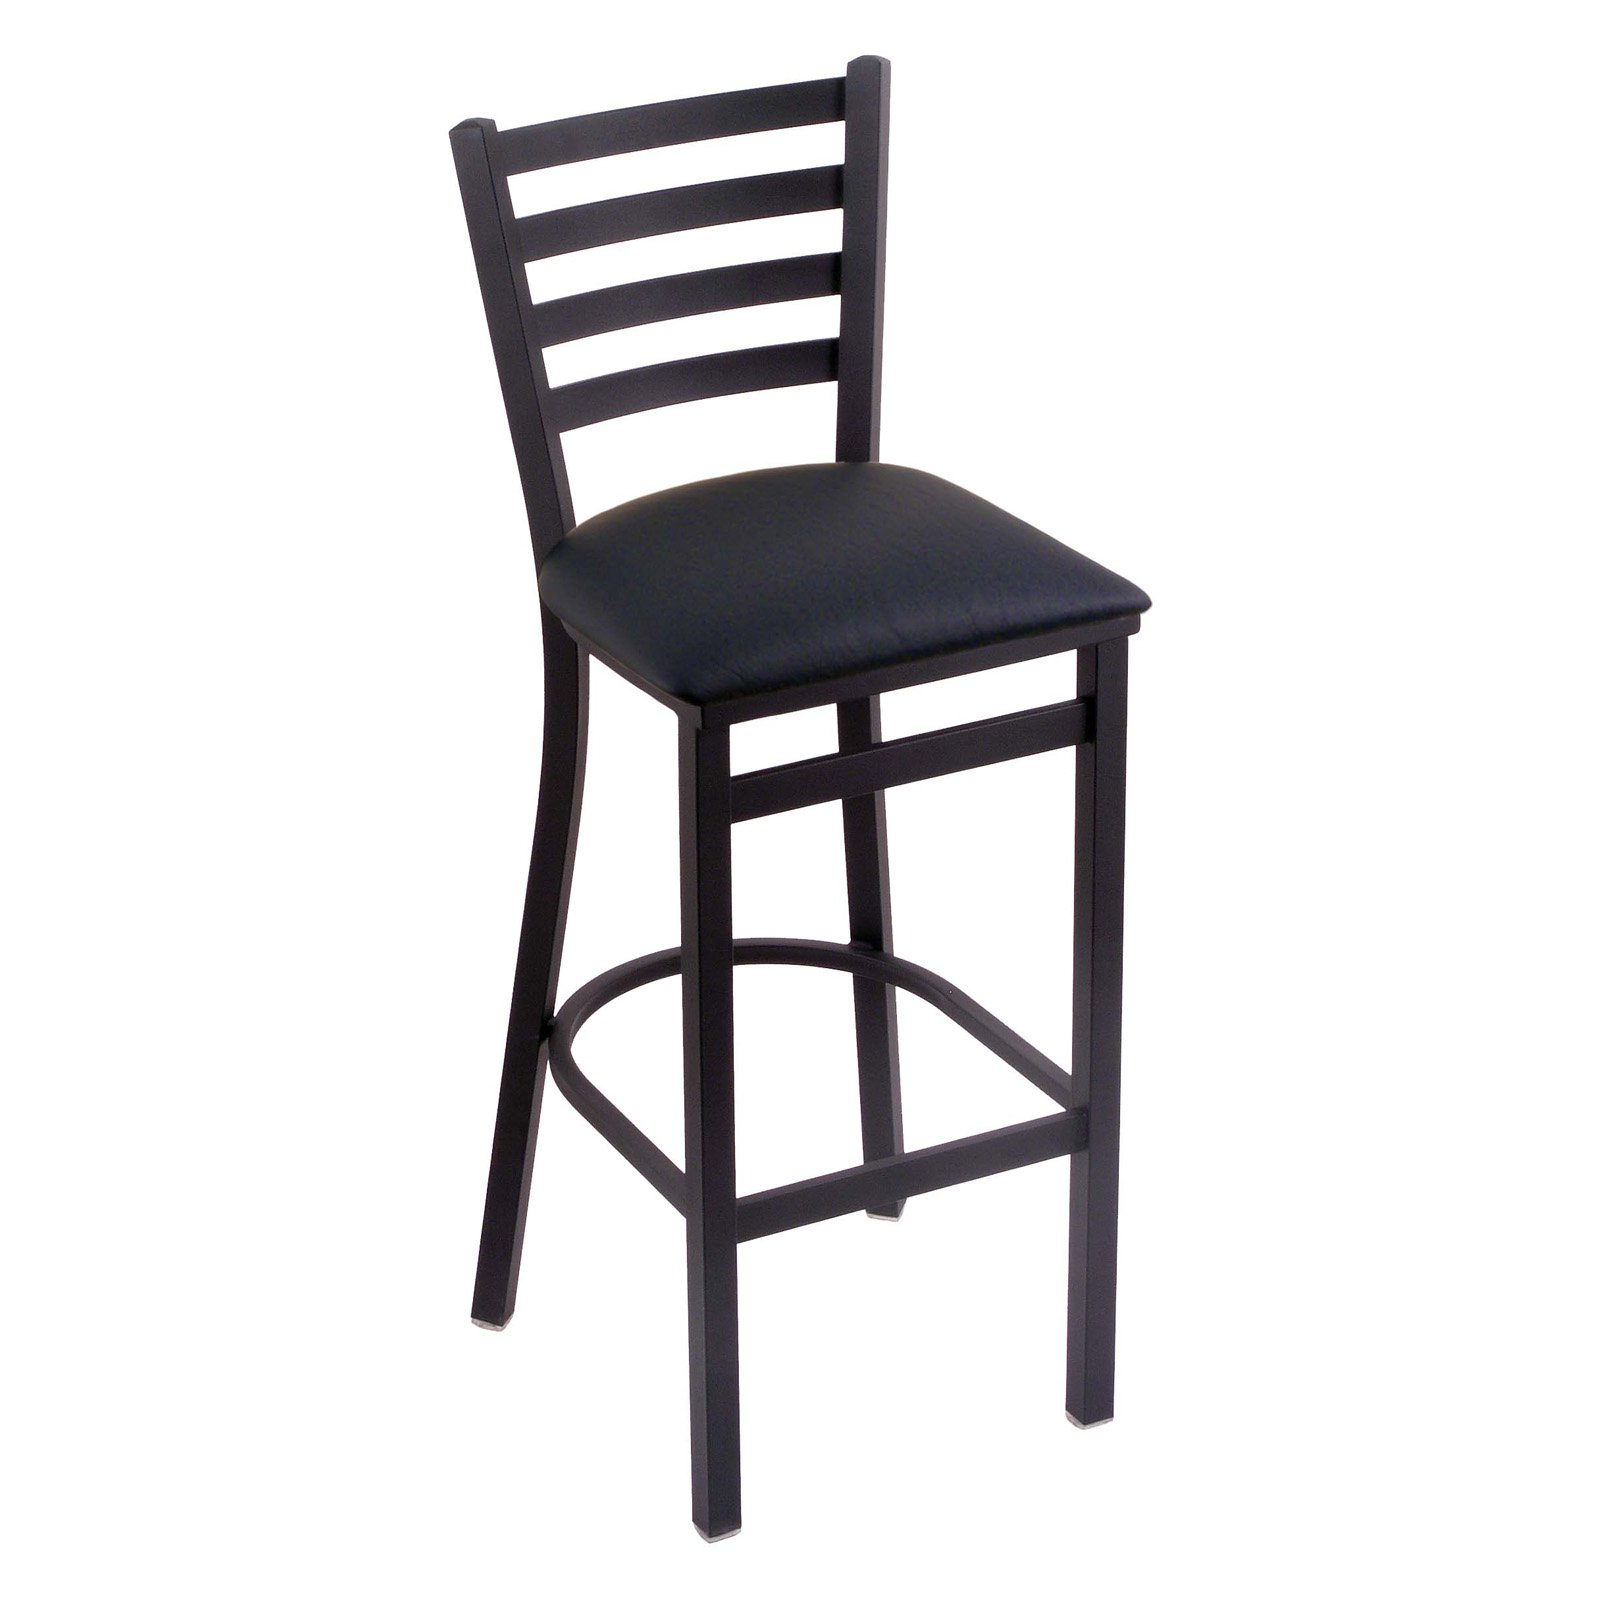 Holland Bar Stool Jackie 30 in. Bar Stool with Faux Leather Seat - Black Wrinkle